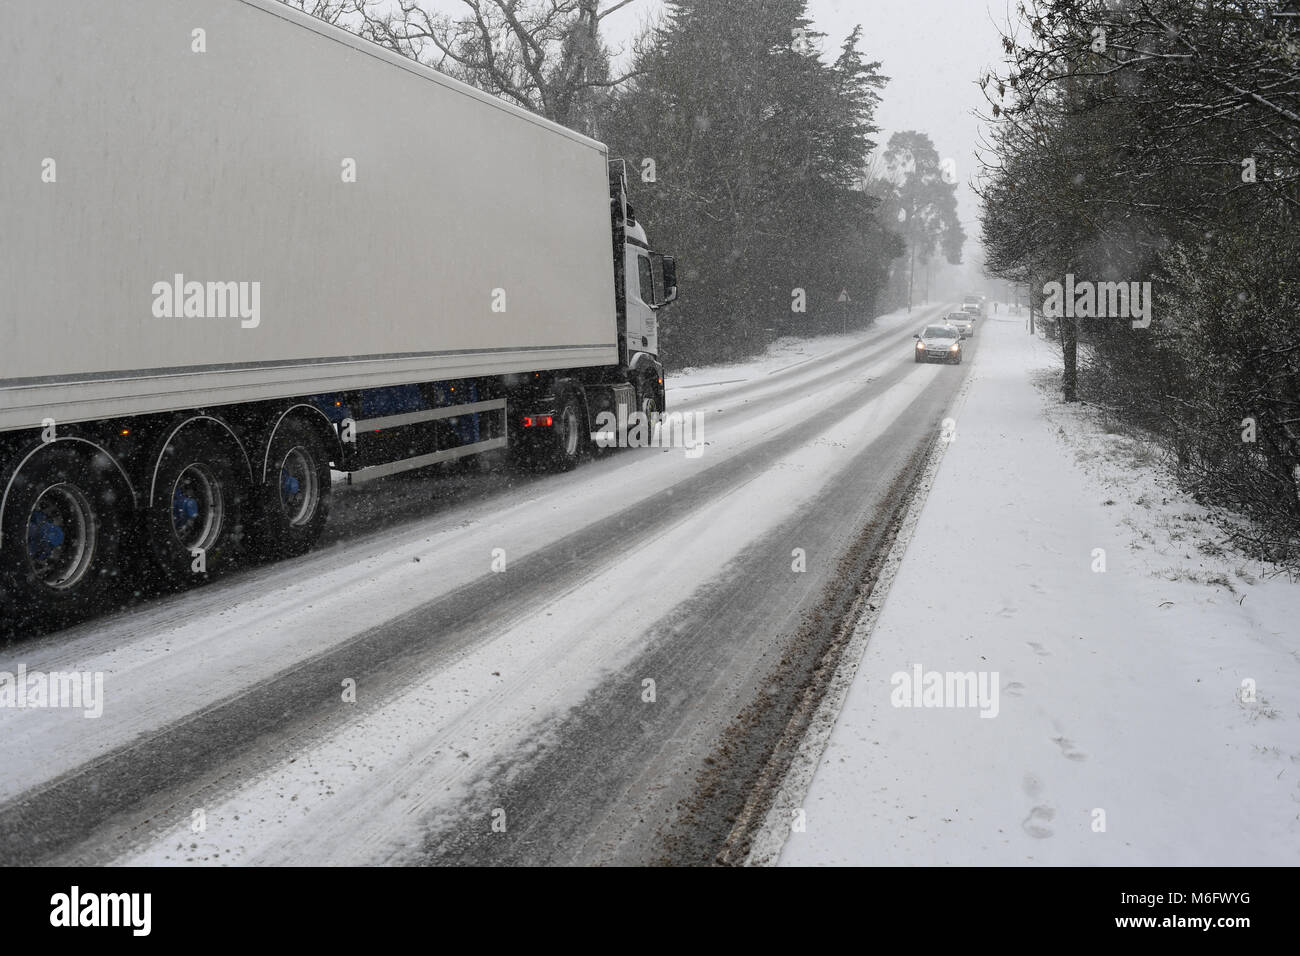 A unmarked logo free white truck drives along the treacherous snow covered A36 during the March 2018 snow storms - Stock Image